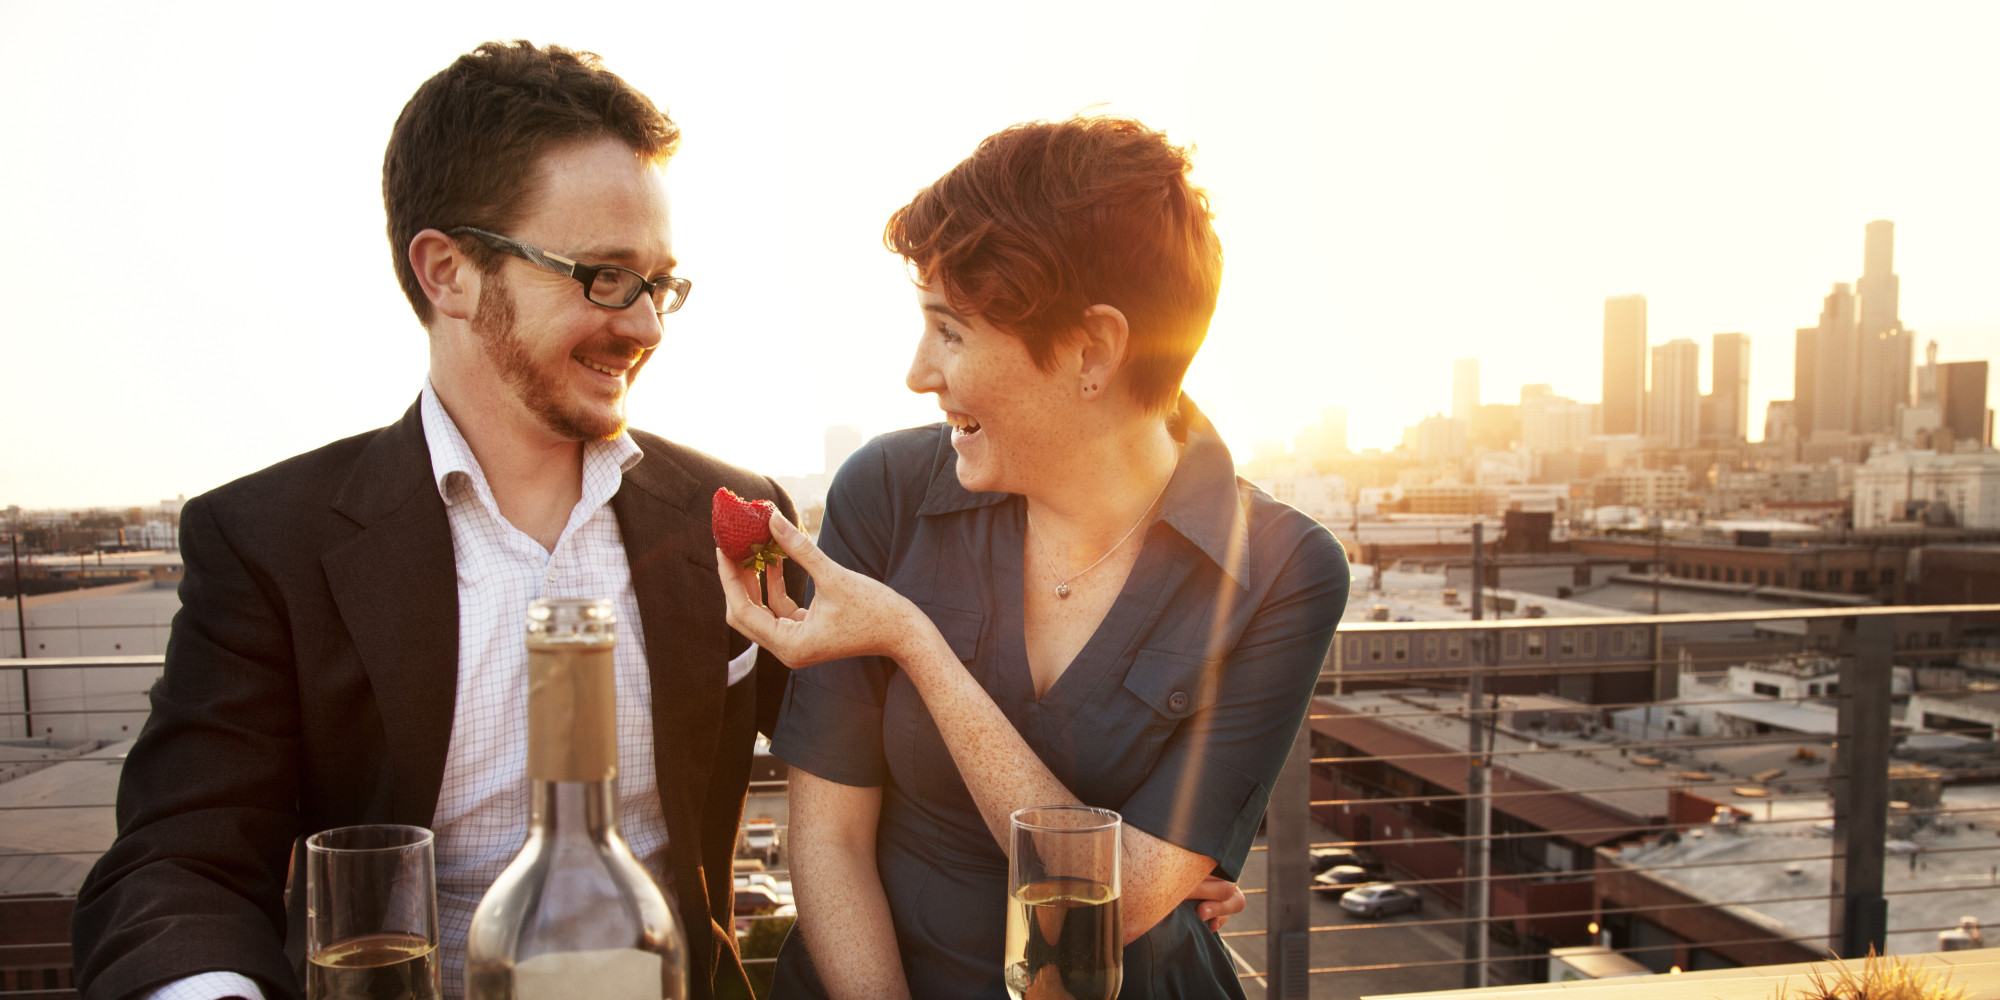 Couple on rooftop drinking wine